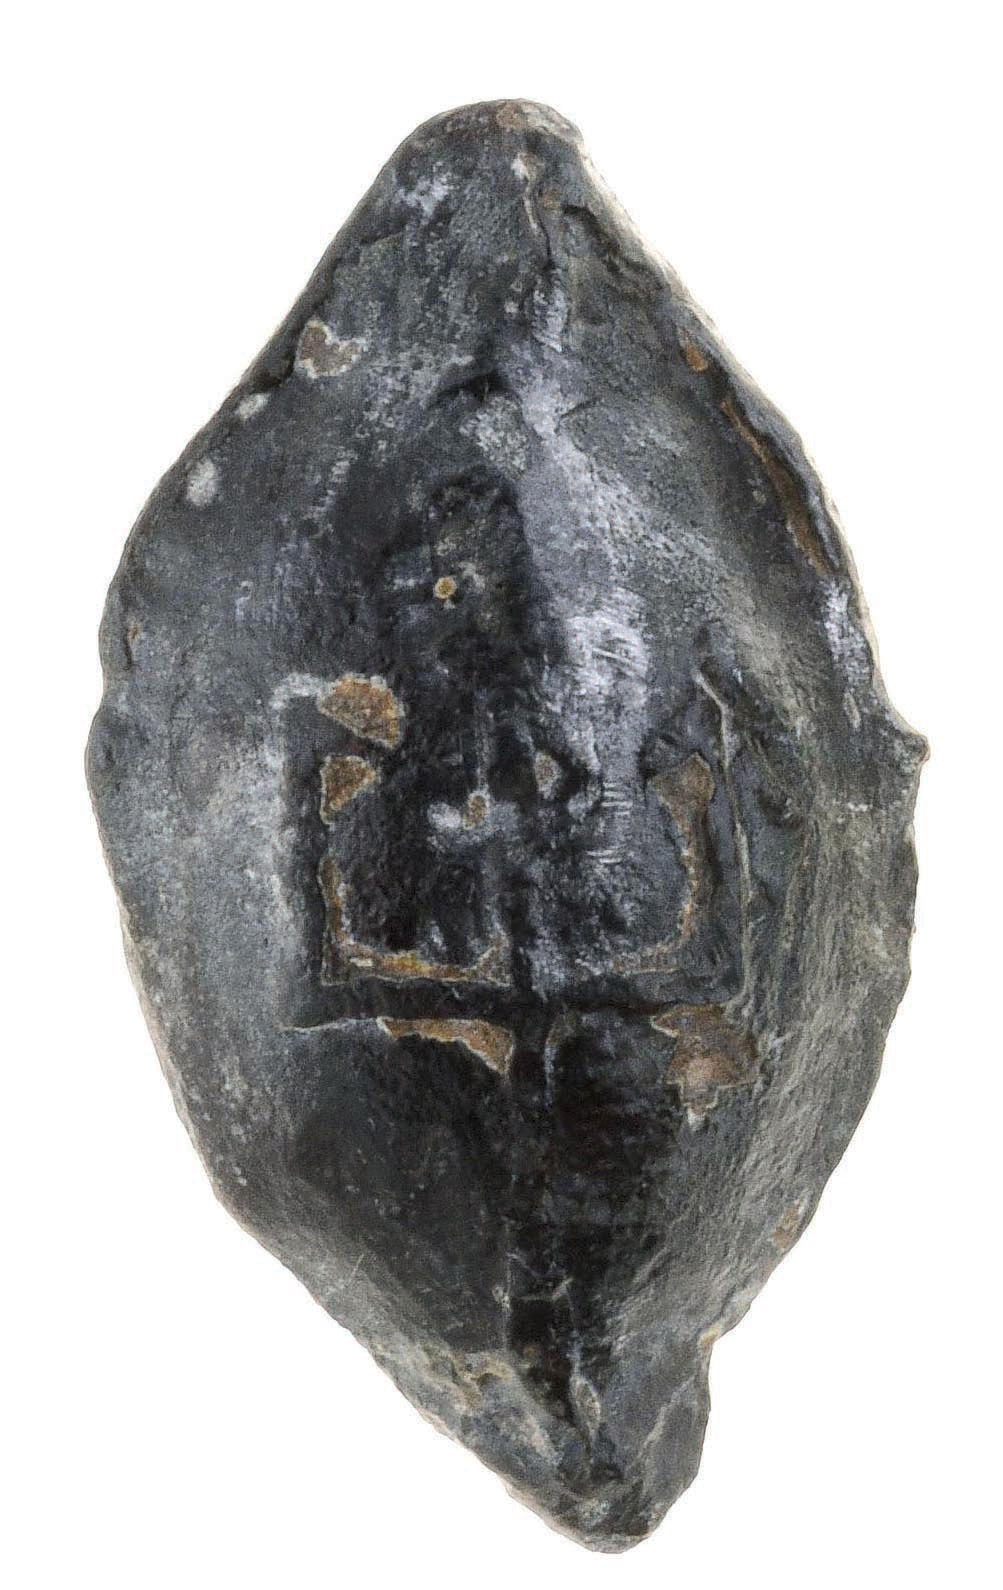 This slingshot marked with a Seleucid symbol was discovered not far from the Akra and was apparently shot from within its walls